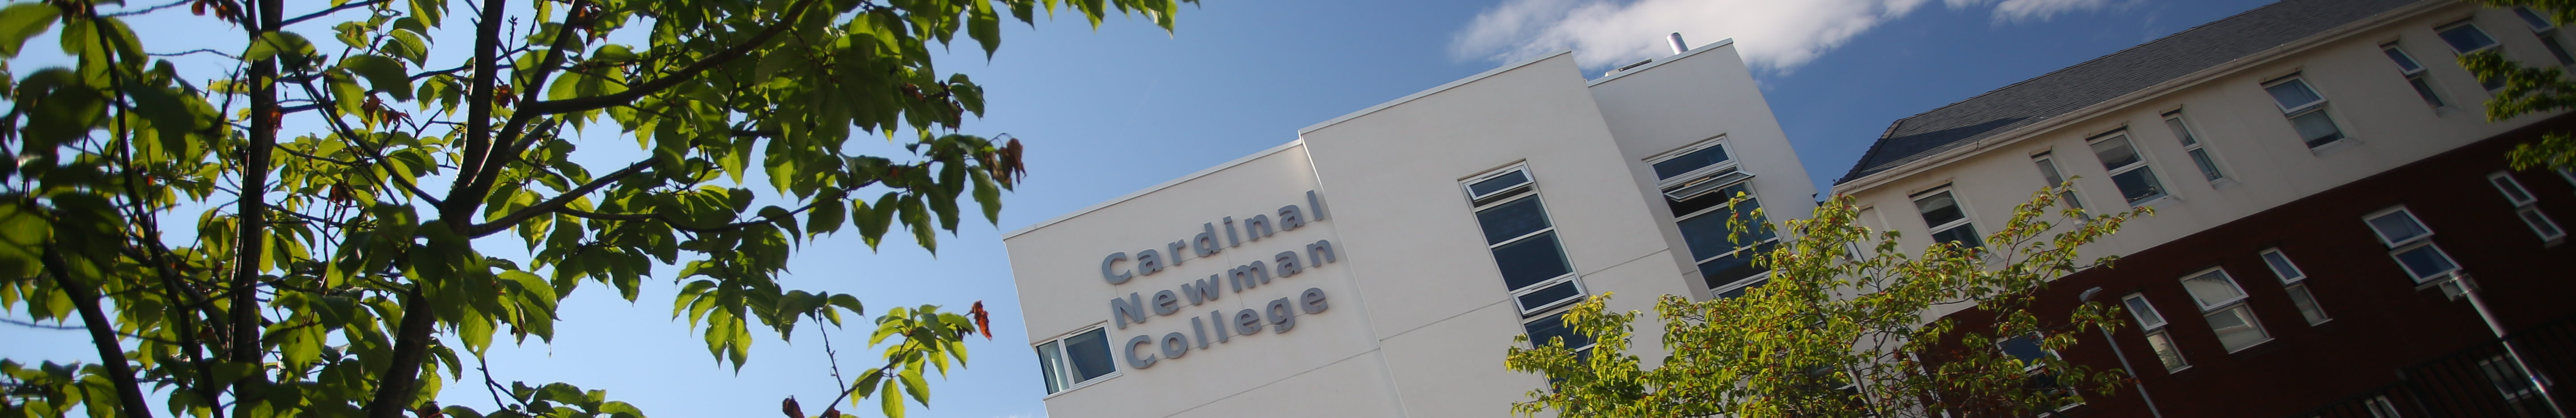 Cardinal Newman College - building signage